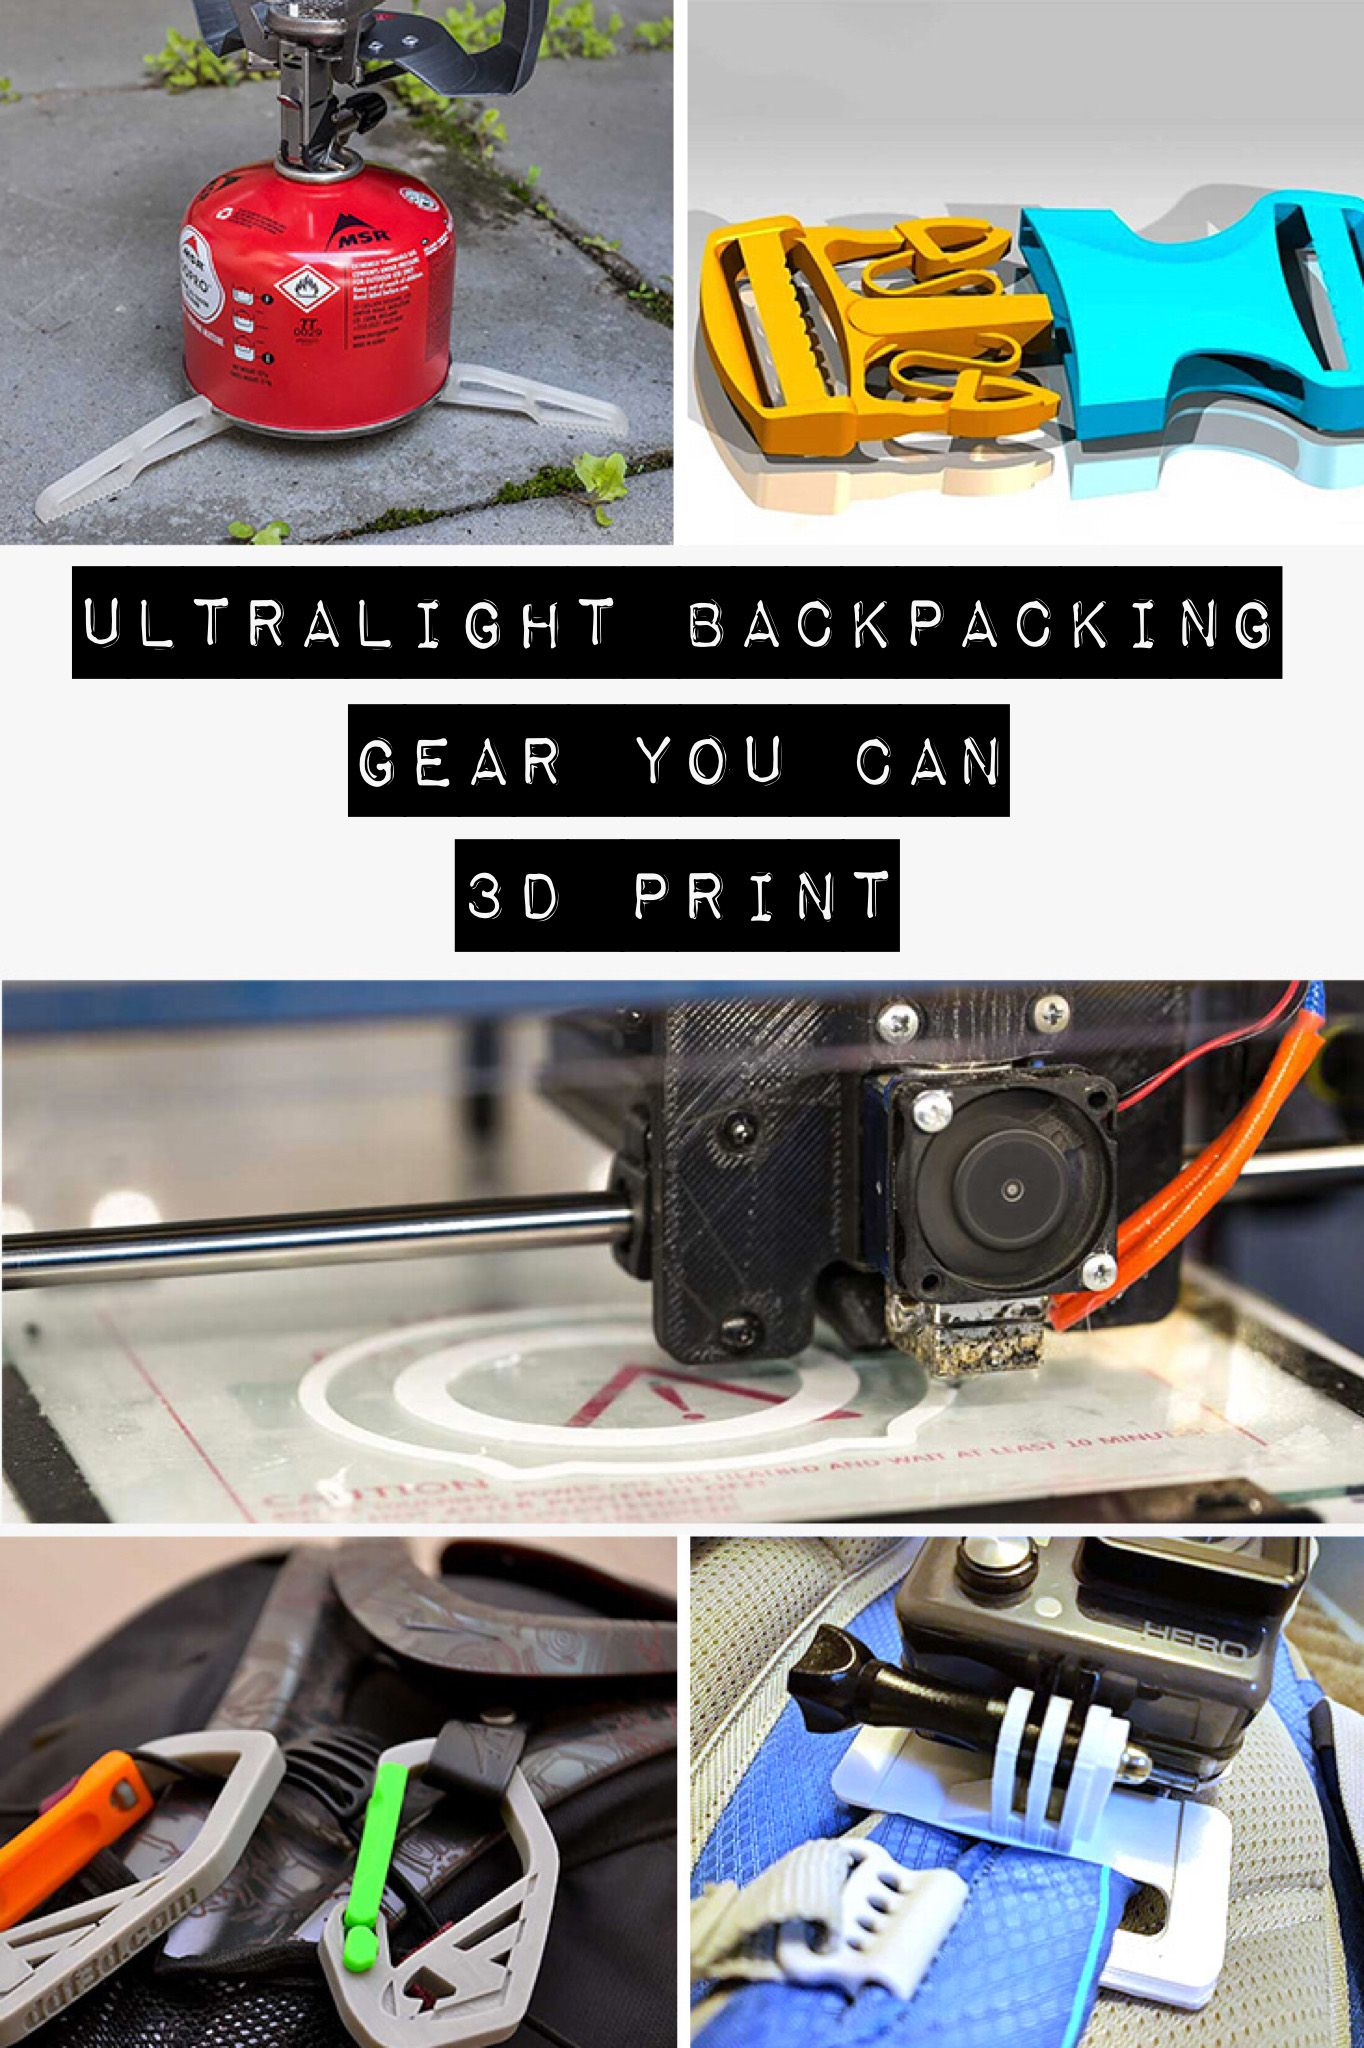 11 Pieces Of Ultralight Backpacking Gear You Can 3d Print Right Now Ultralight Backpacking Gear Camping Gear Diy Ultralight Backpacking